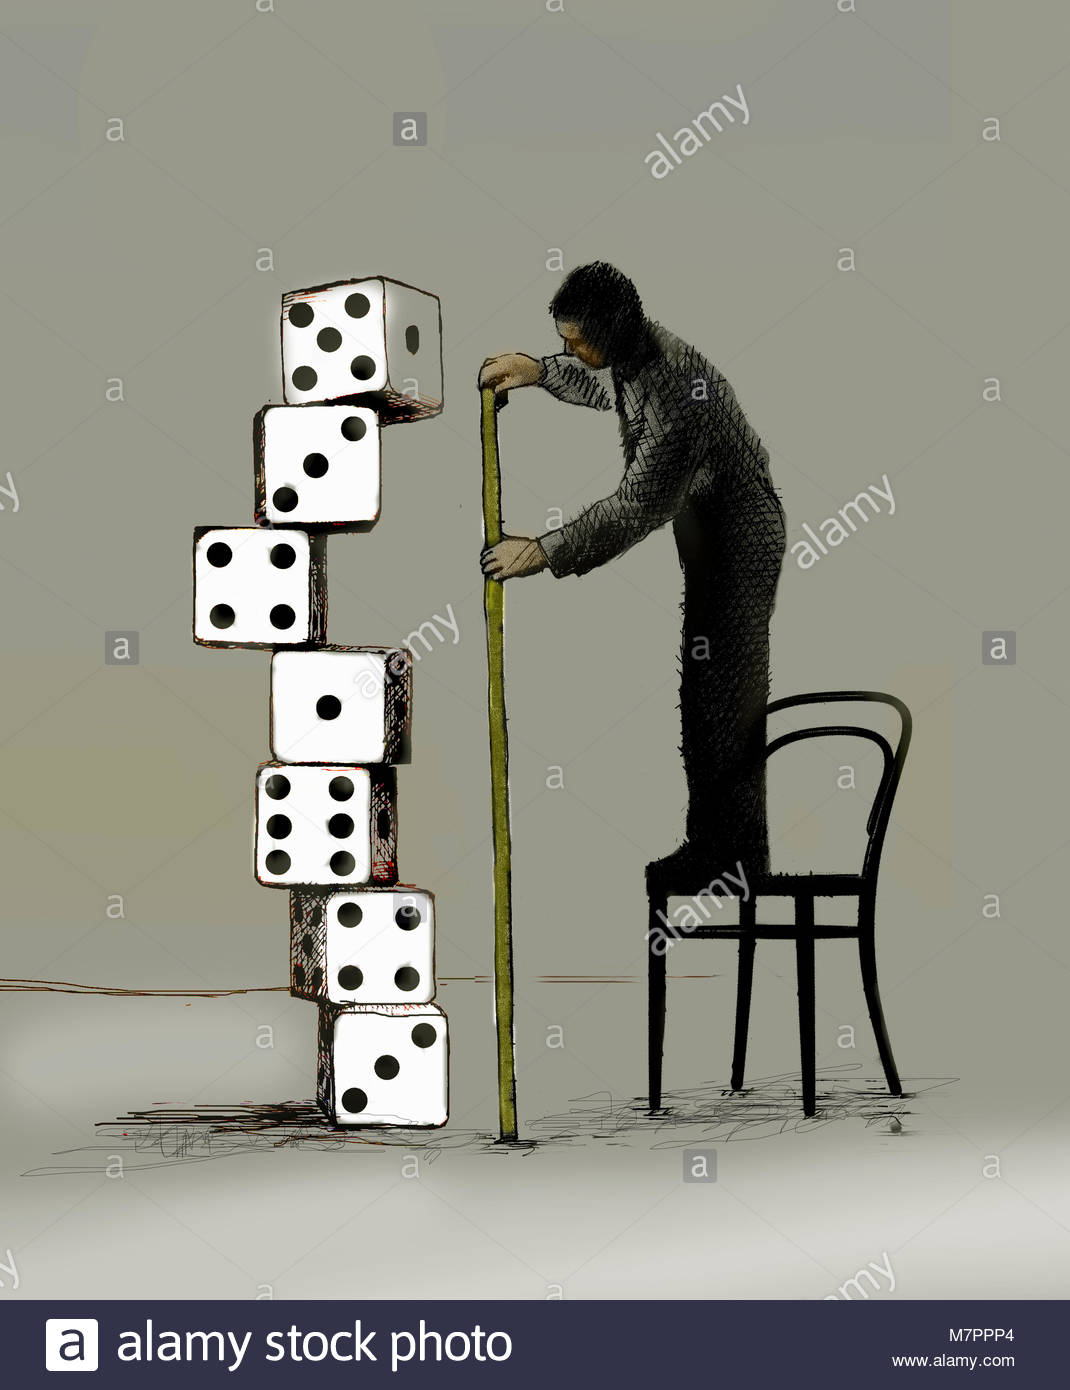 Businessman standing on chair measuring pile of dice - Stock Image